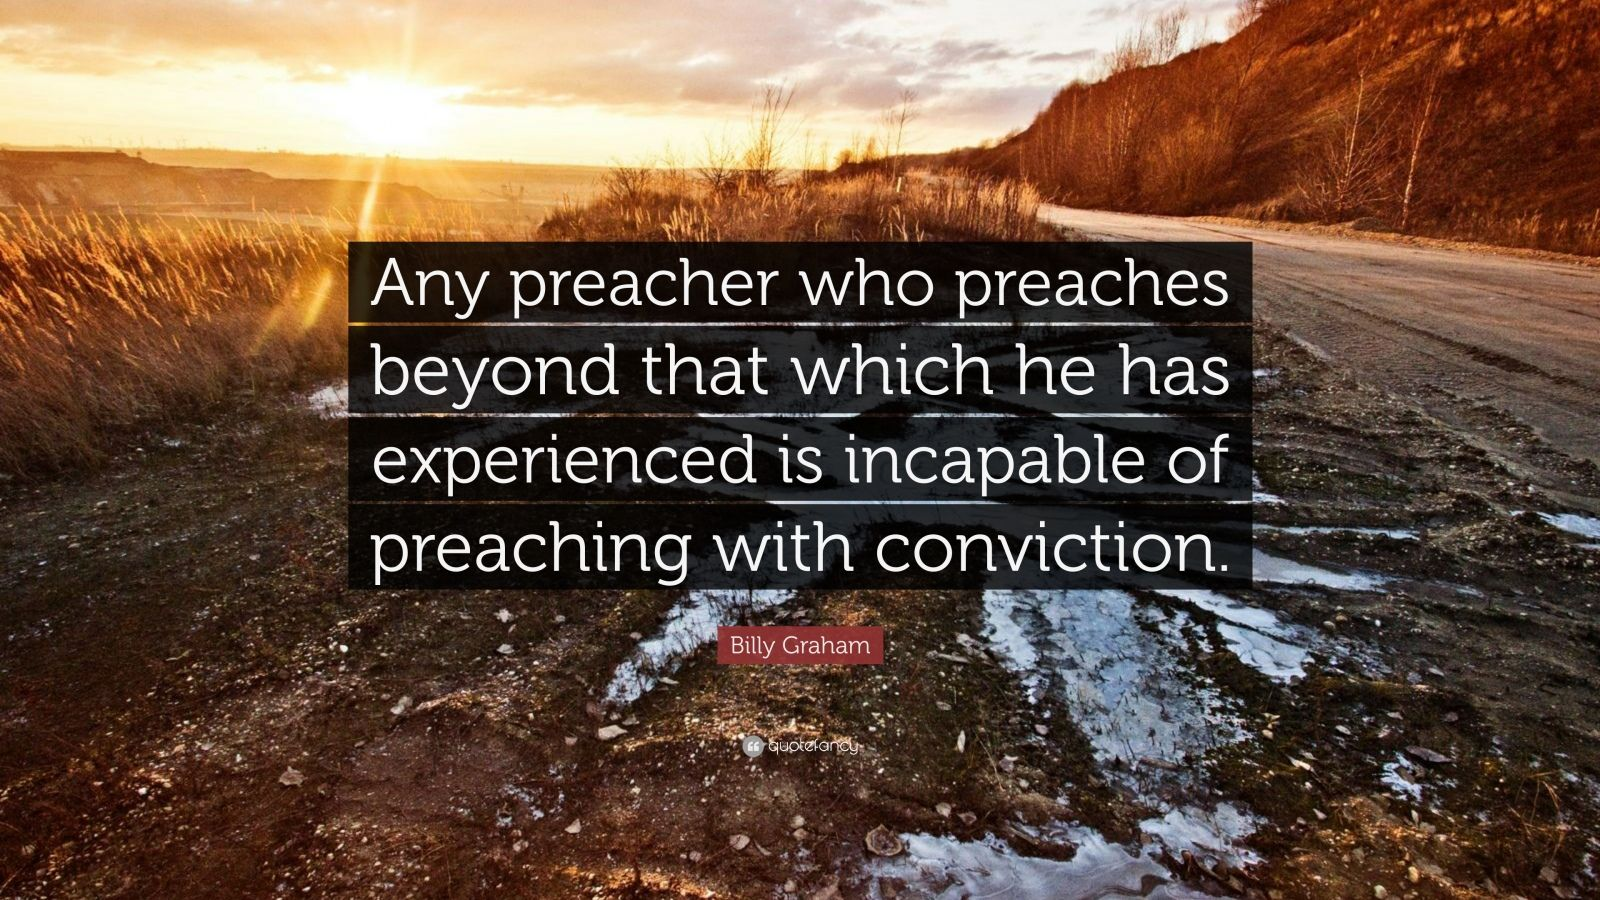 """Billy Graham Quote: """"Any preacher who preaches beyond that which he has experienced is incapable of preaching with conviction."""""""